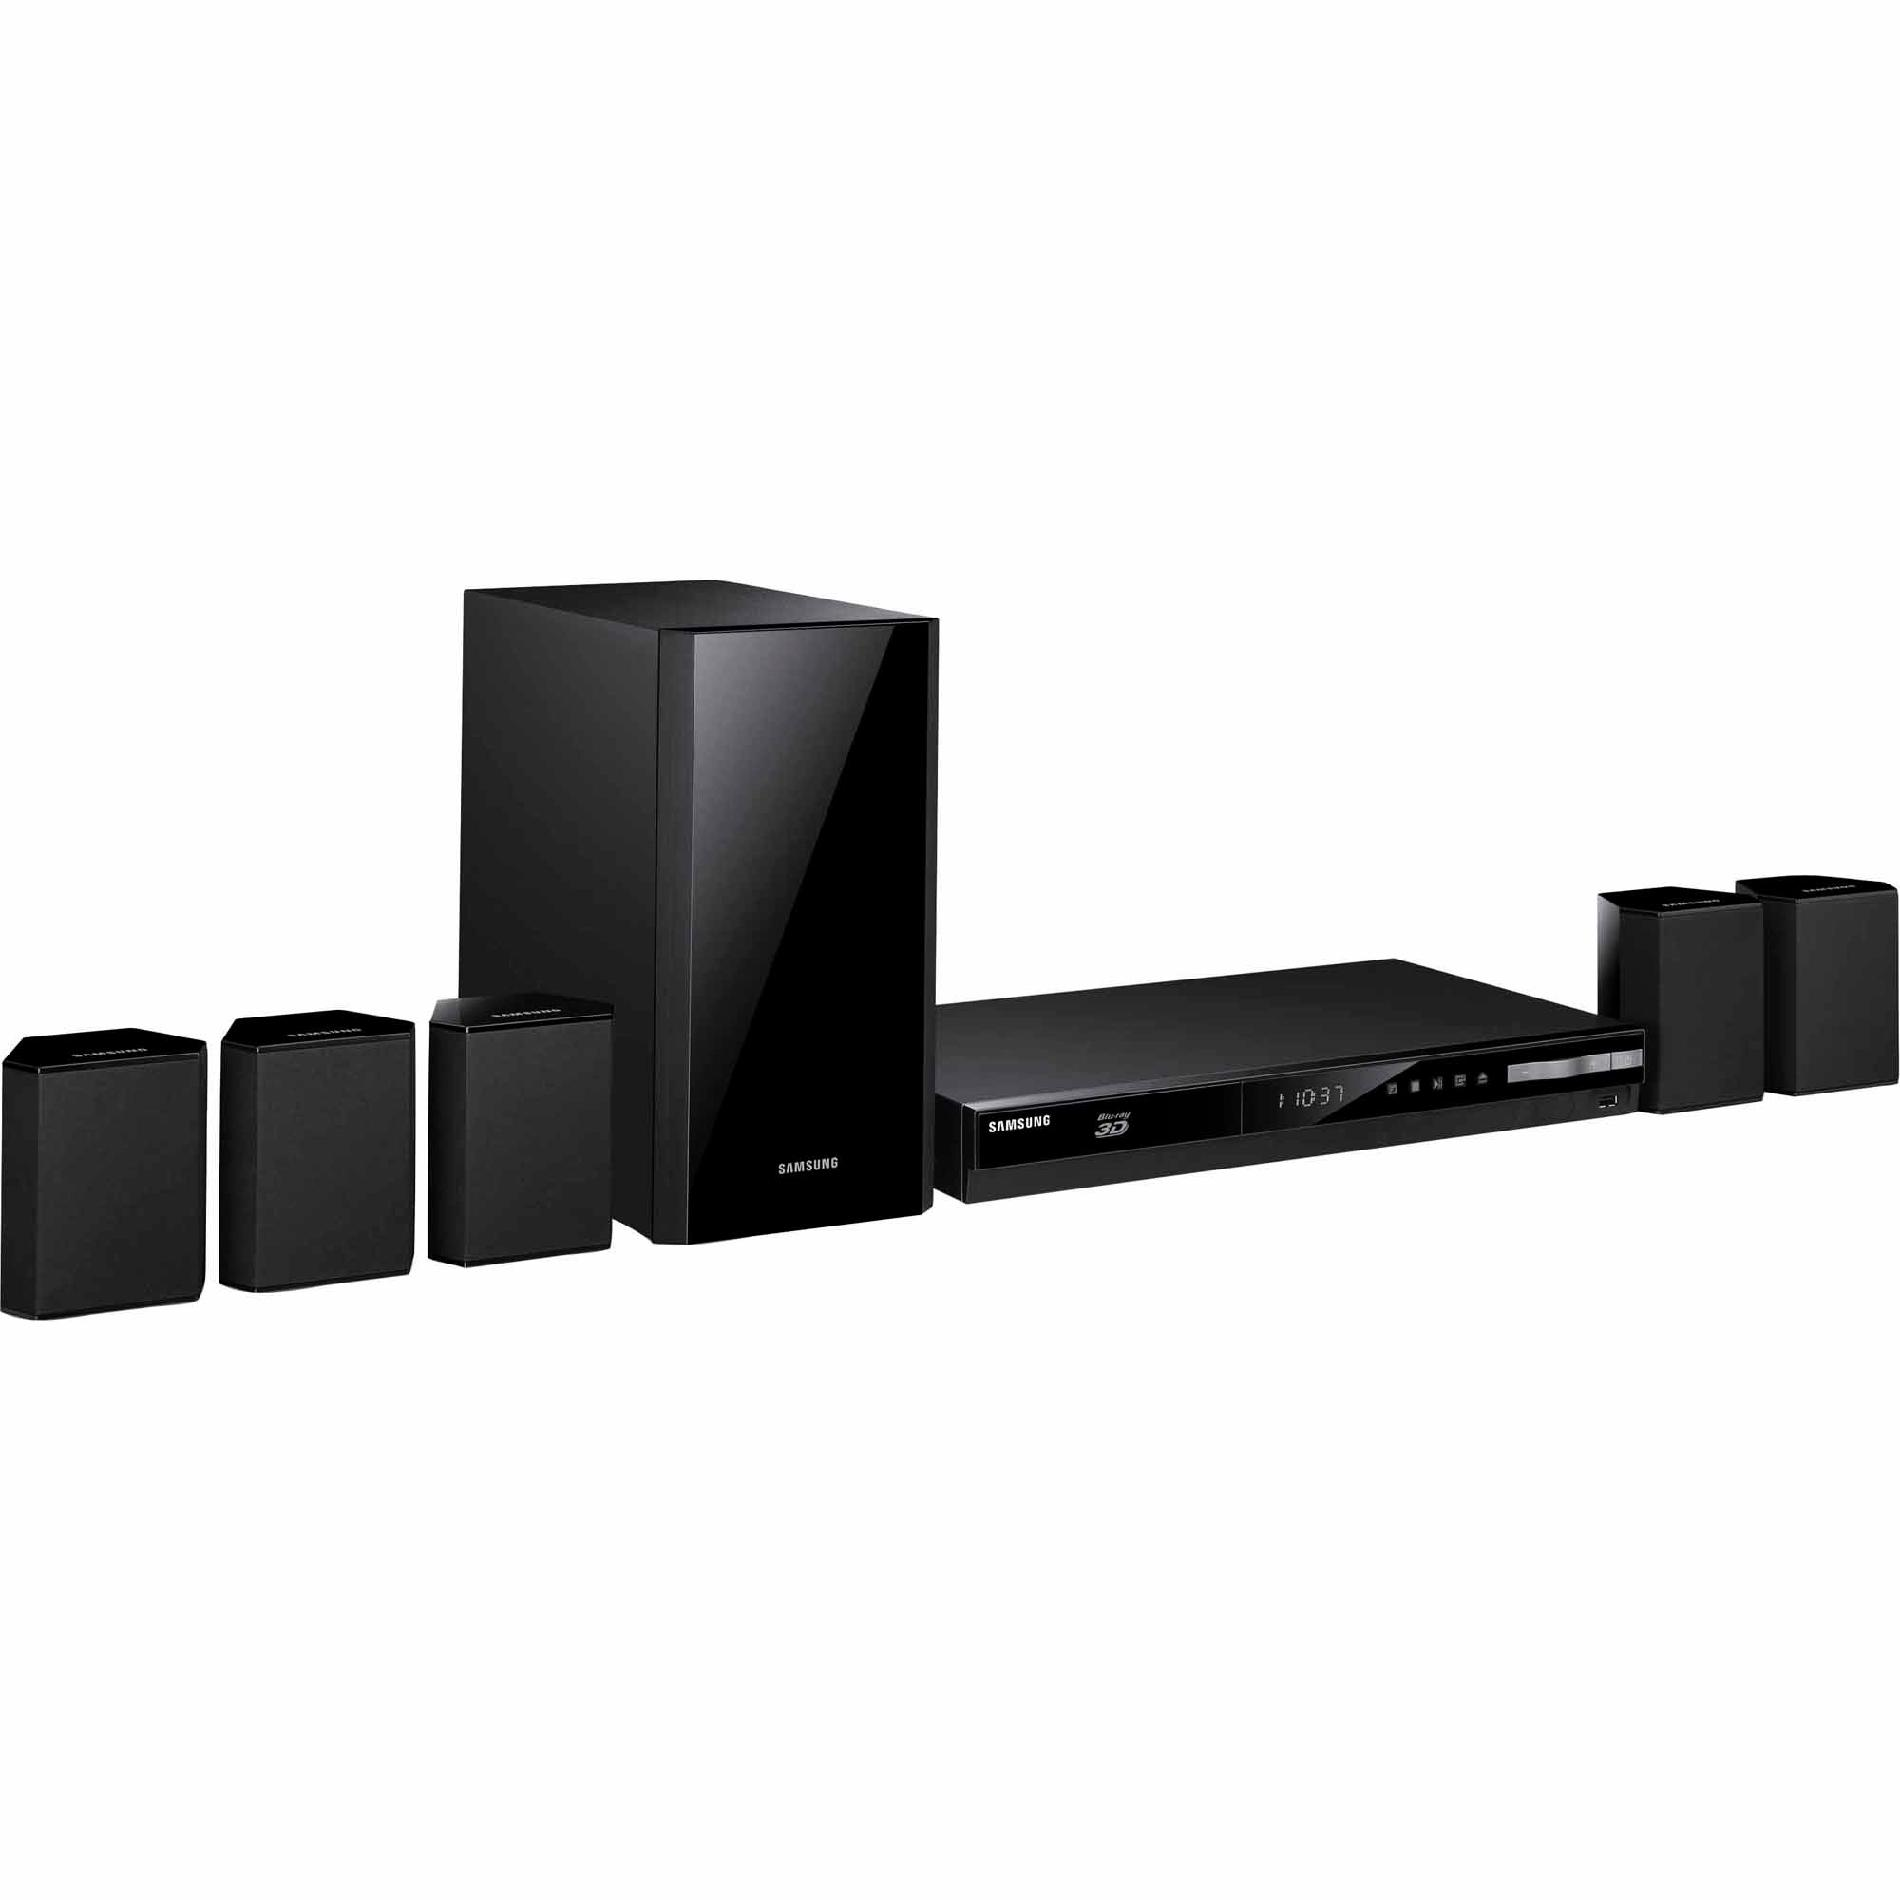 Samsung 5.1 Channel 500W Home Theater System with 3D Blu-ray - HT-H4500